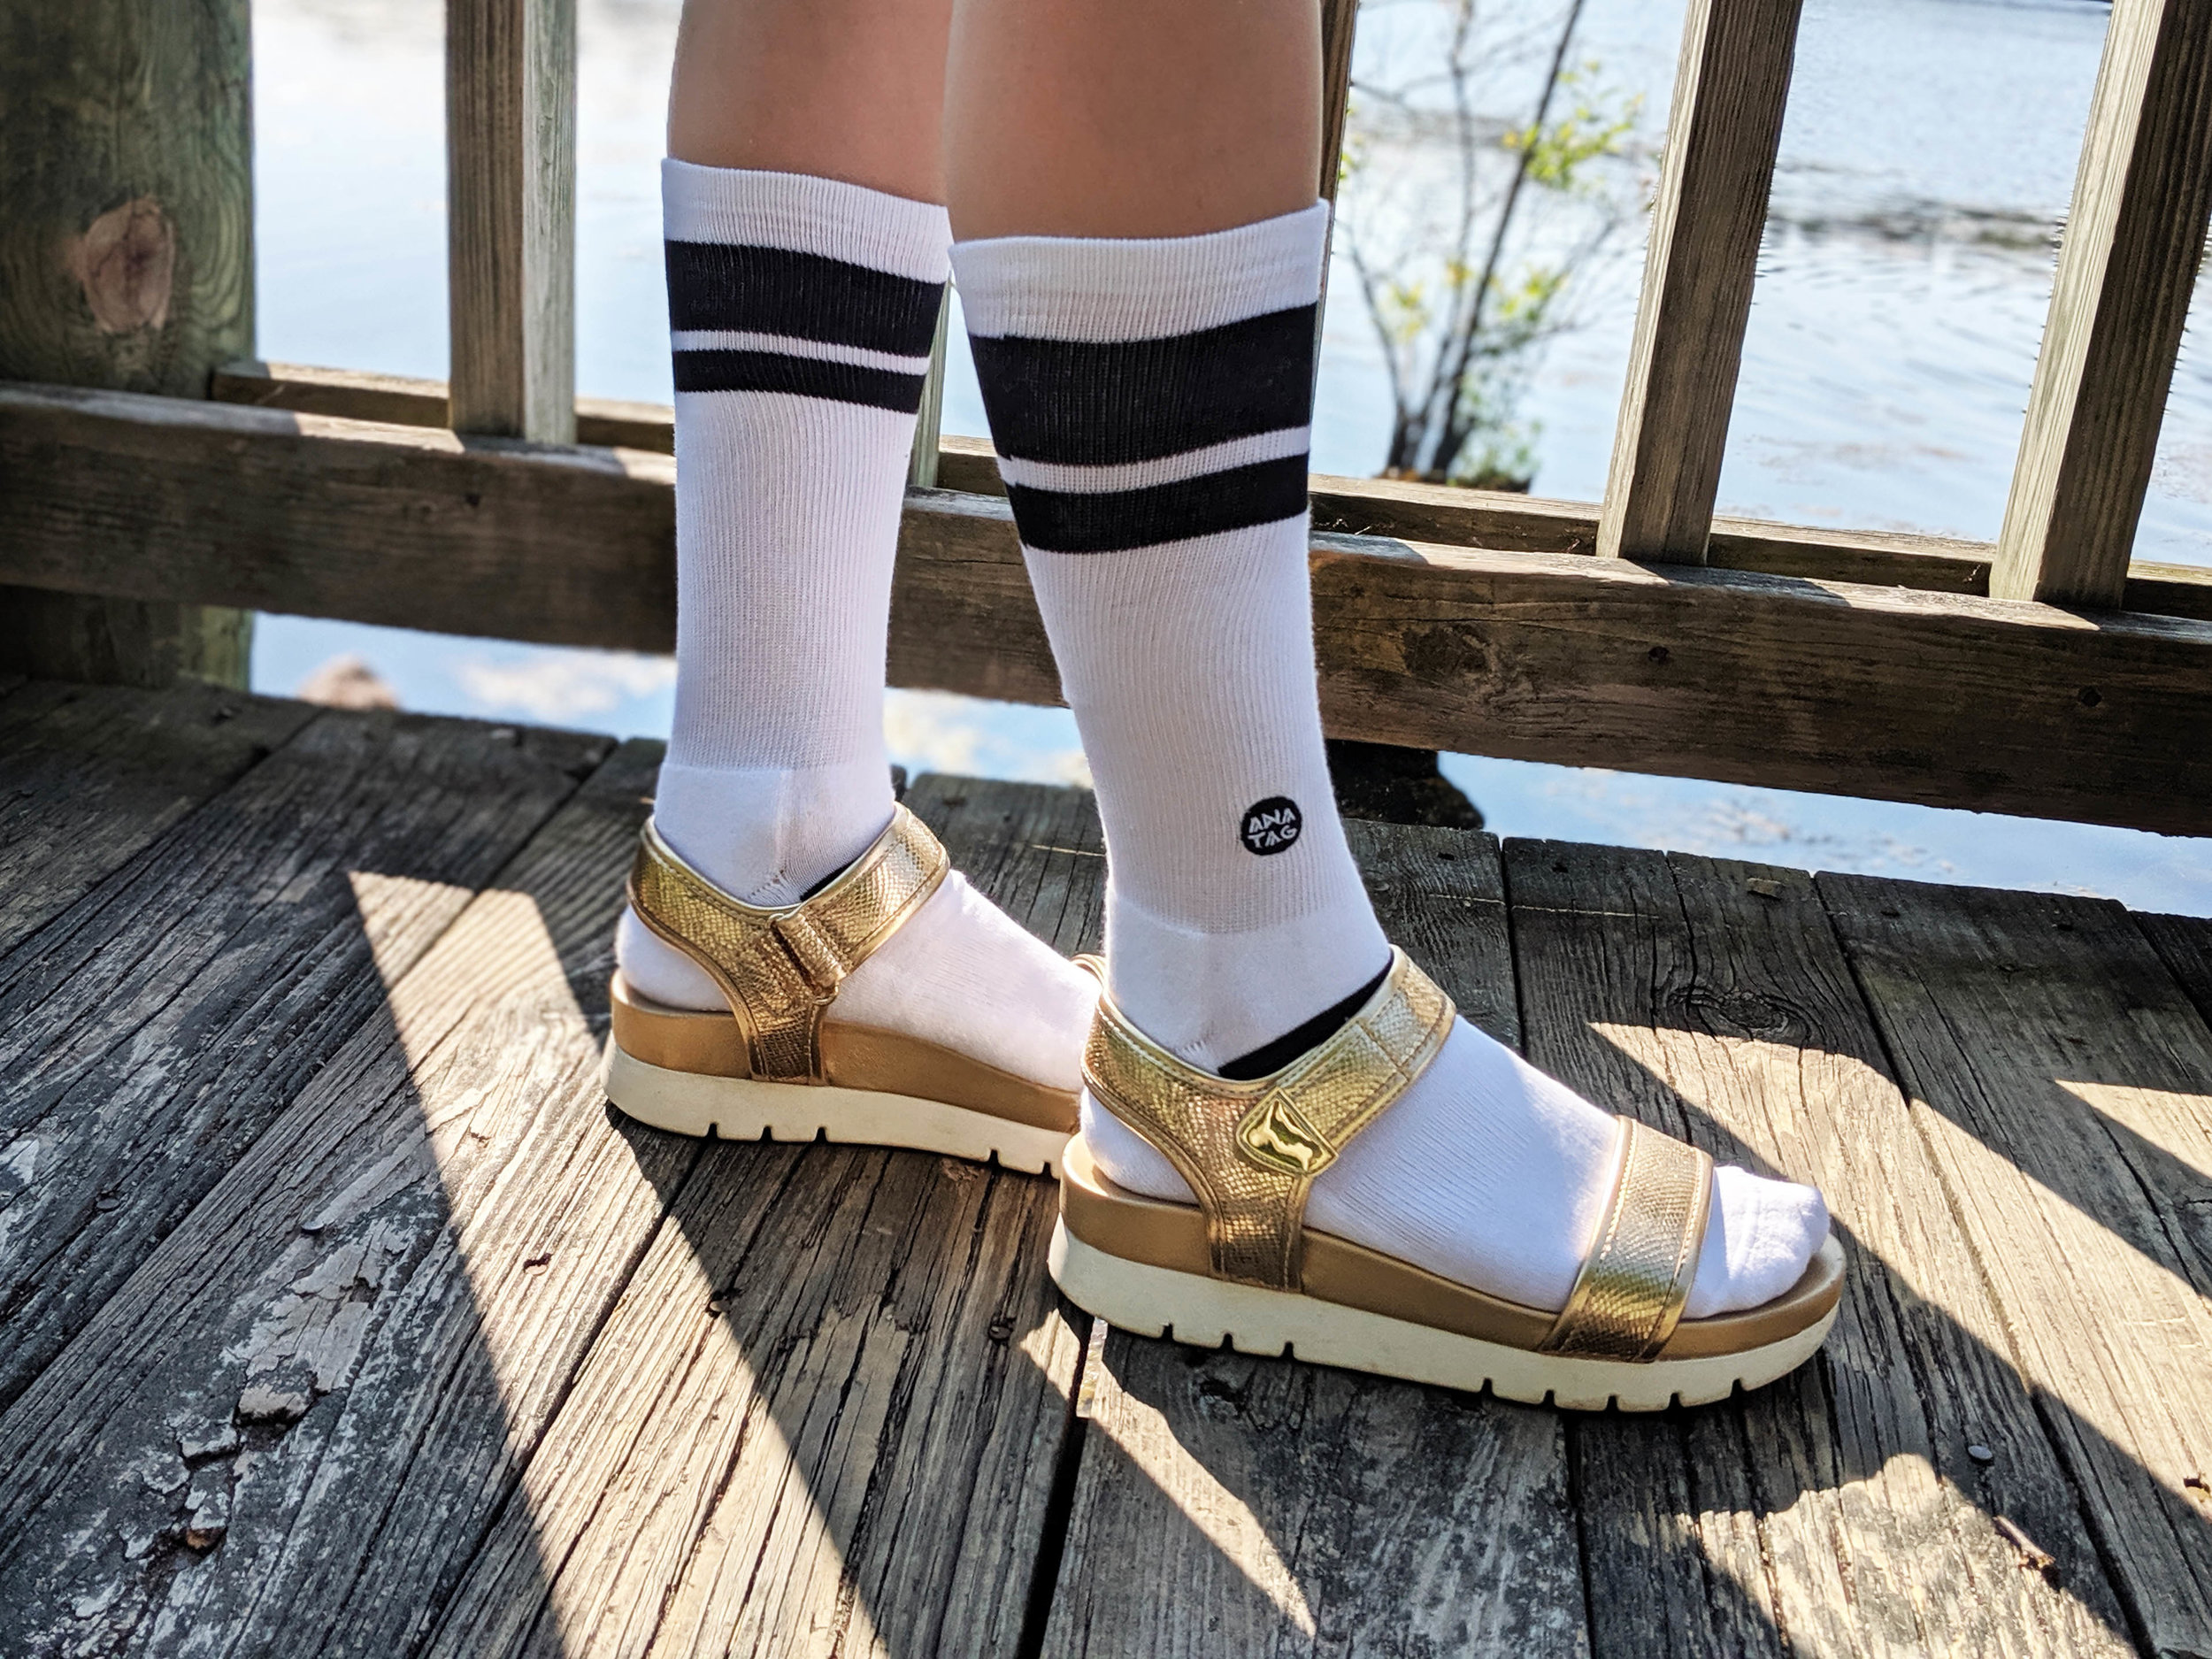 Anatag Socks - a pair by the pier, featuring 'Essential' in White.